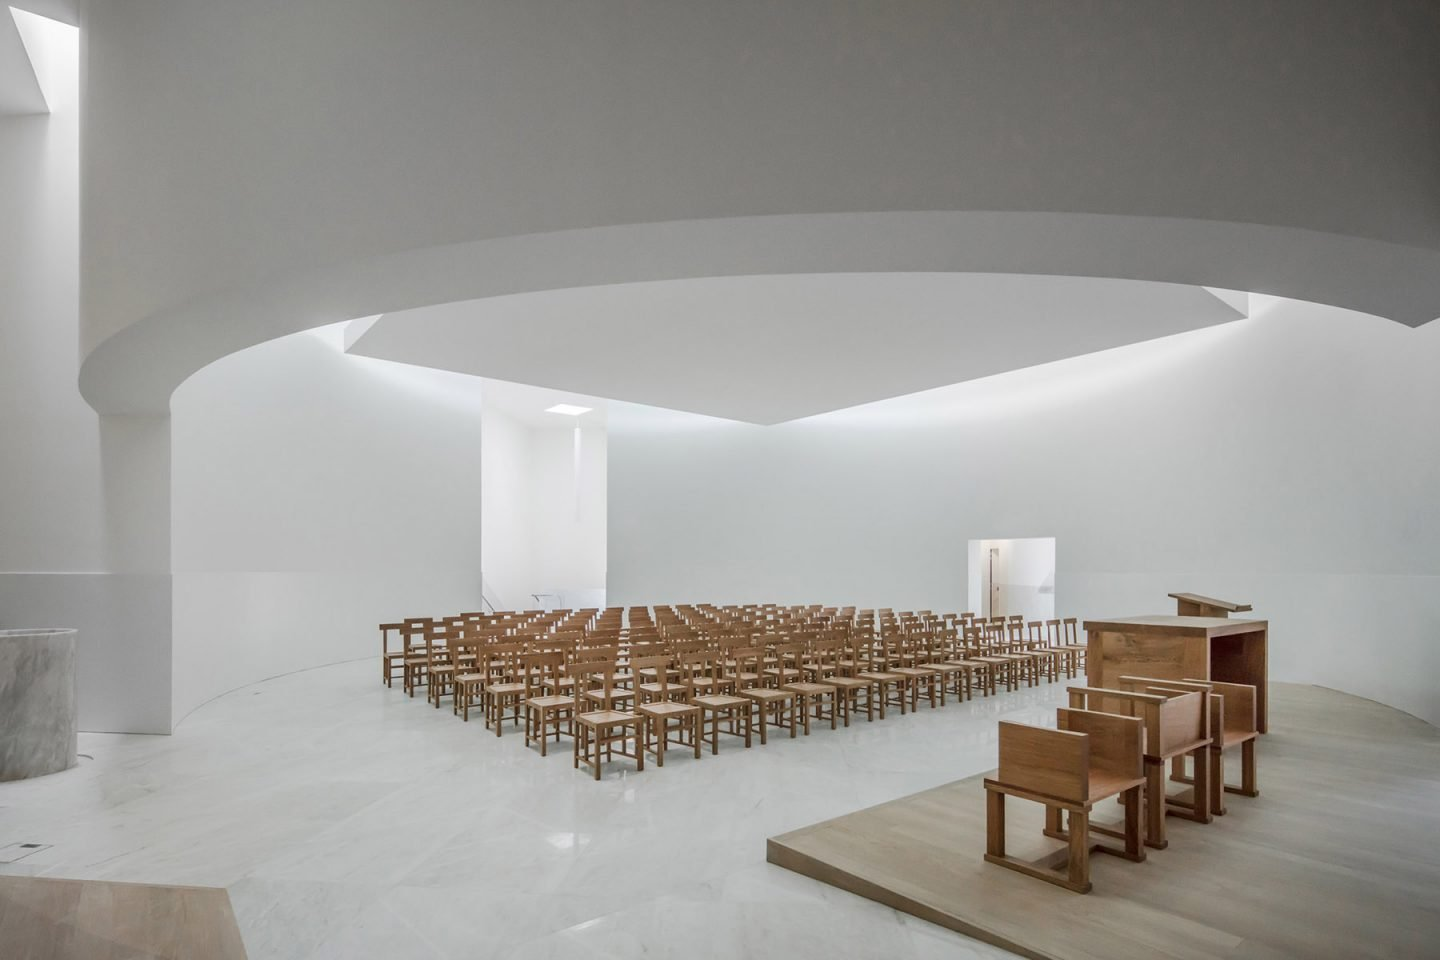 193 Lvaro Siza Designs A White Concrete Modernist Church Ignant